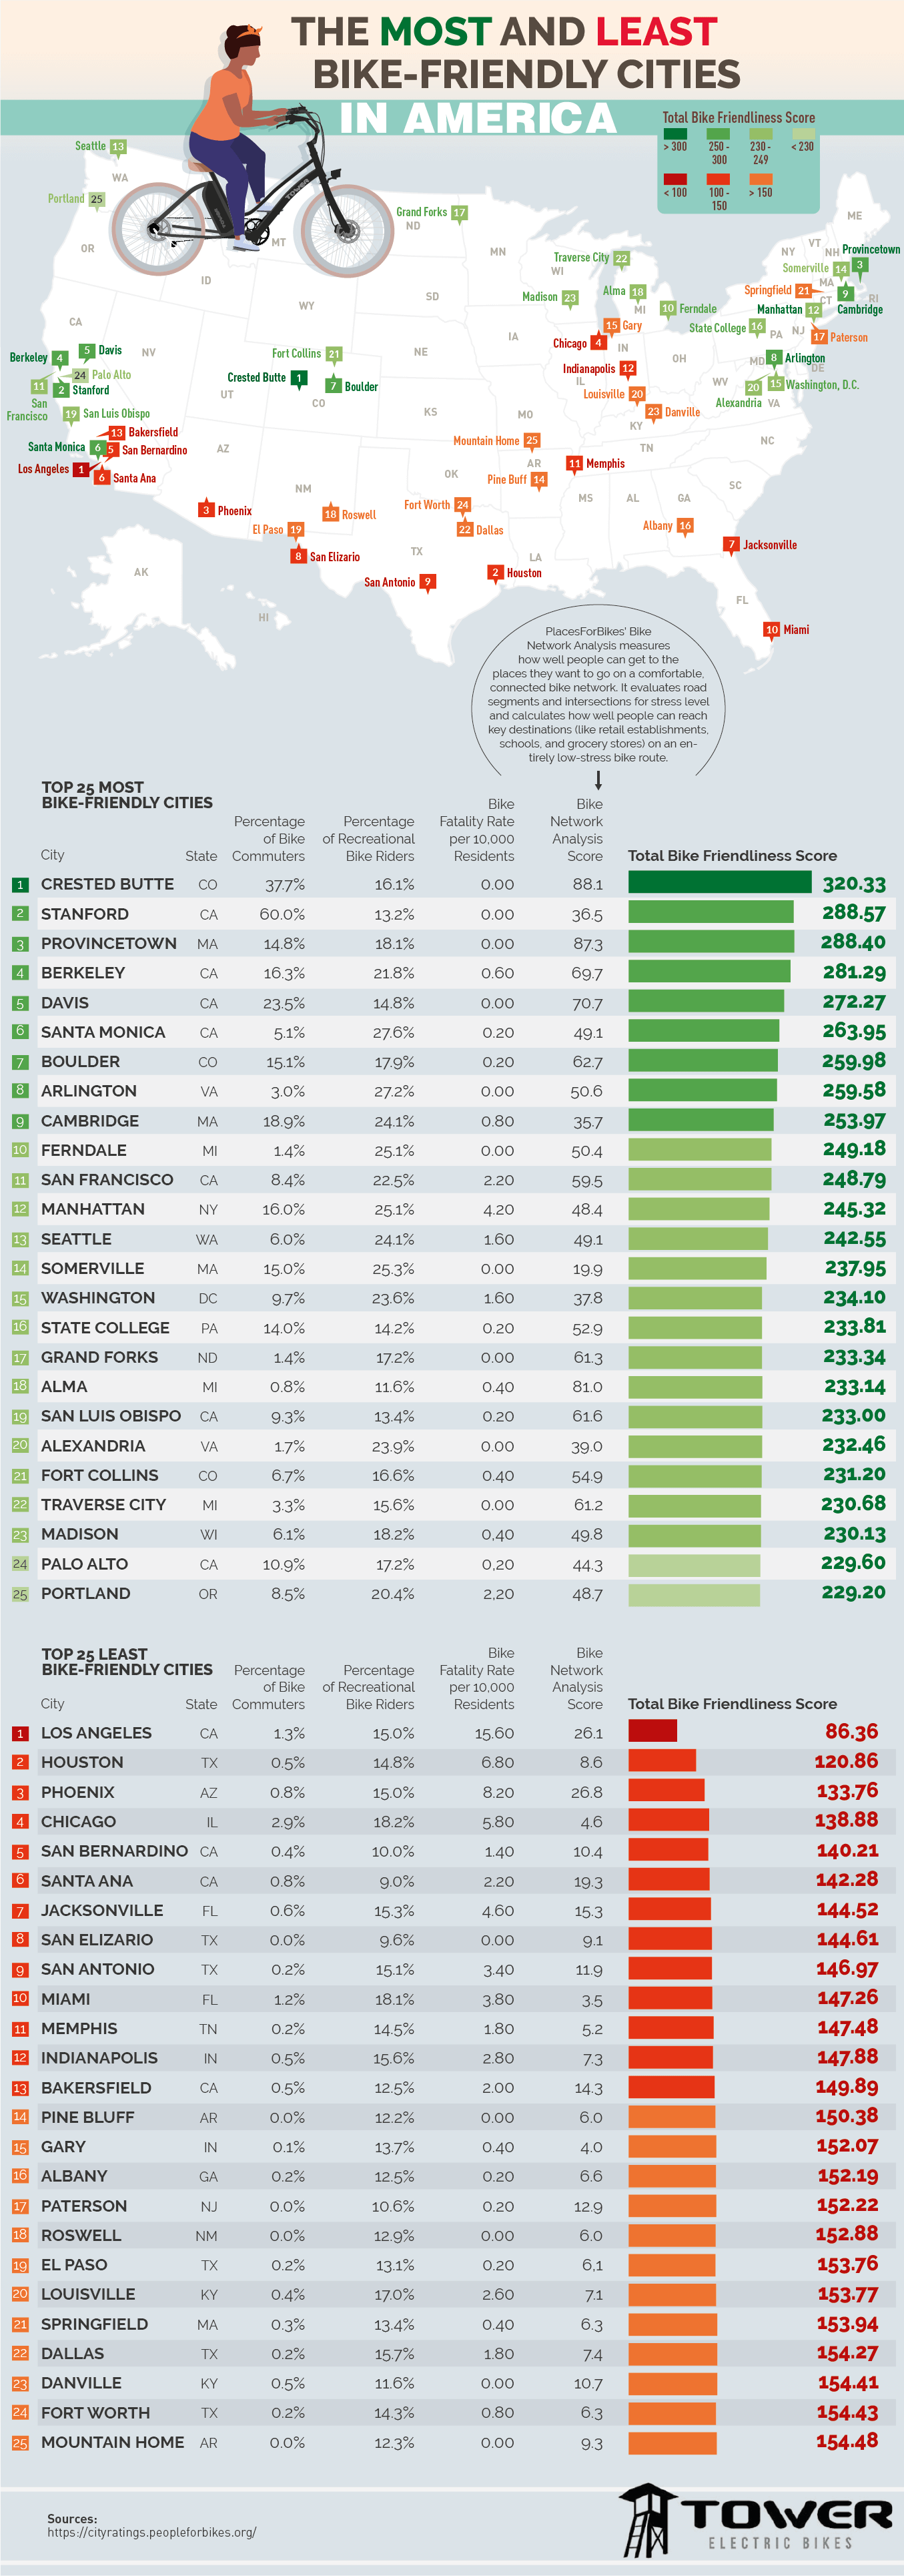 The Most Bike-Friendly Cities made by Tower Electric Bikes